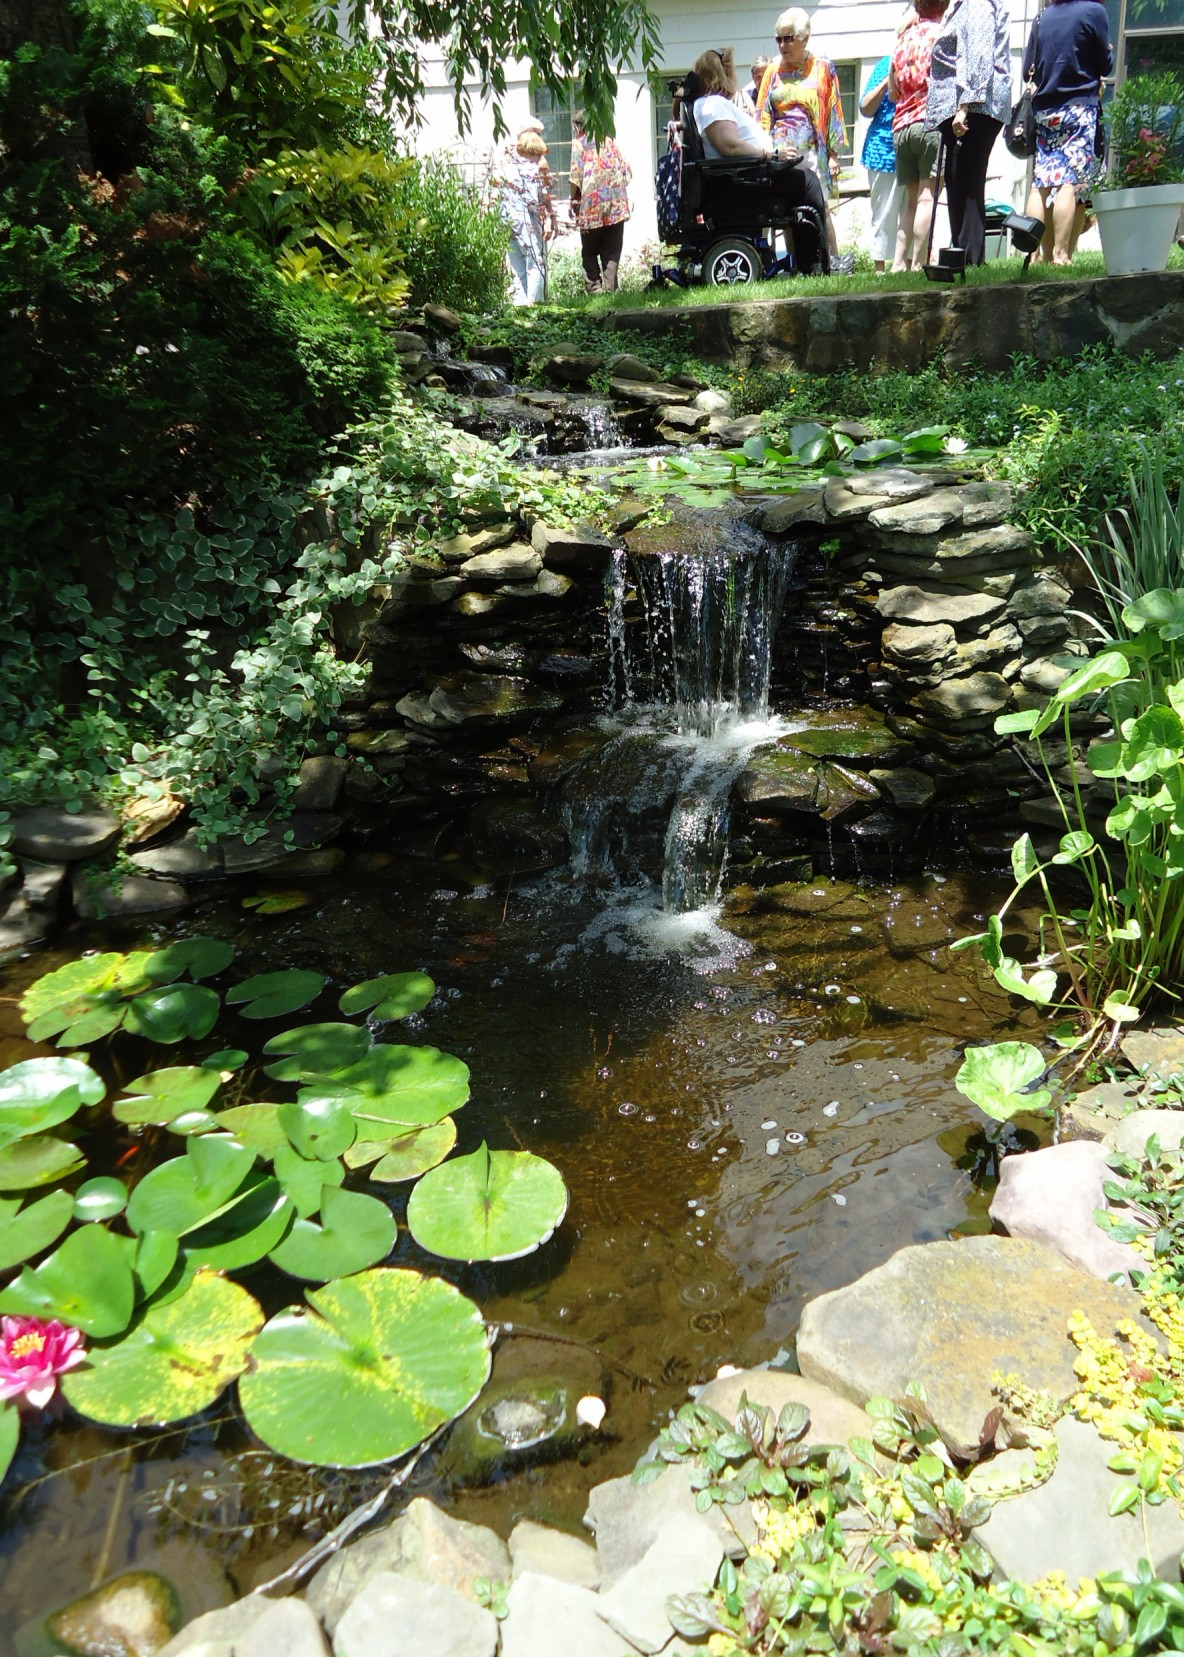 File:Waterfall and pond at a garden party.jpg